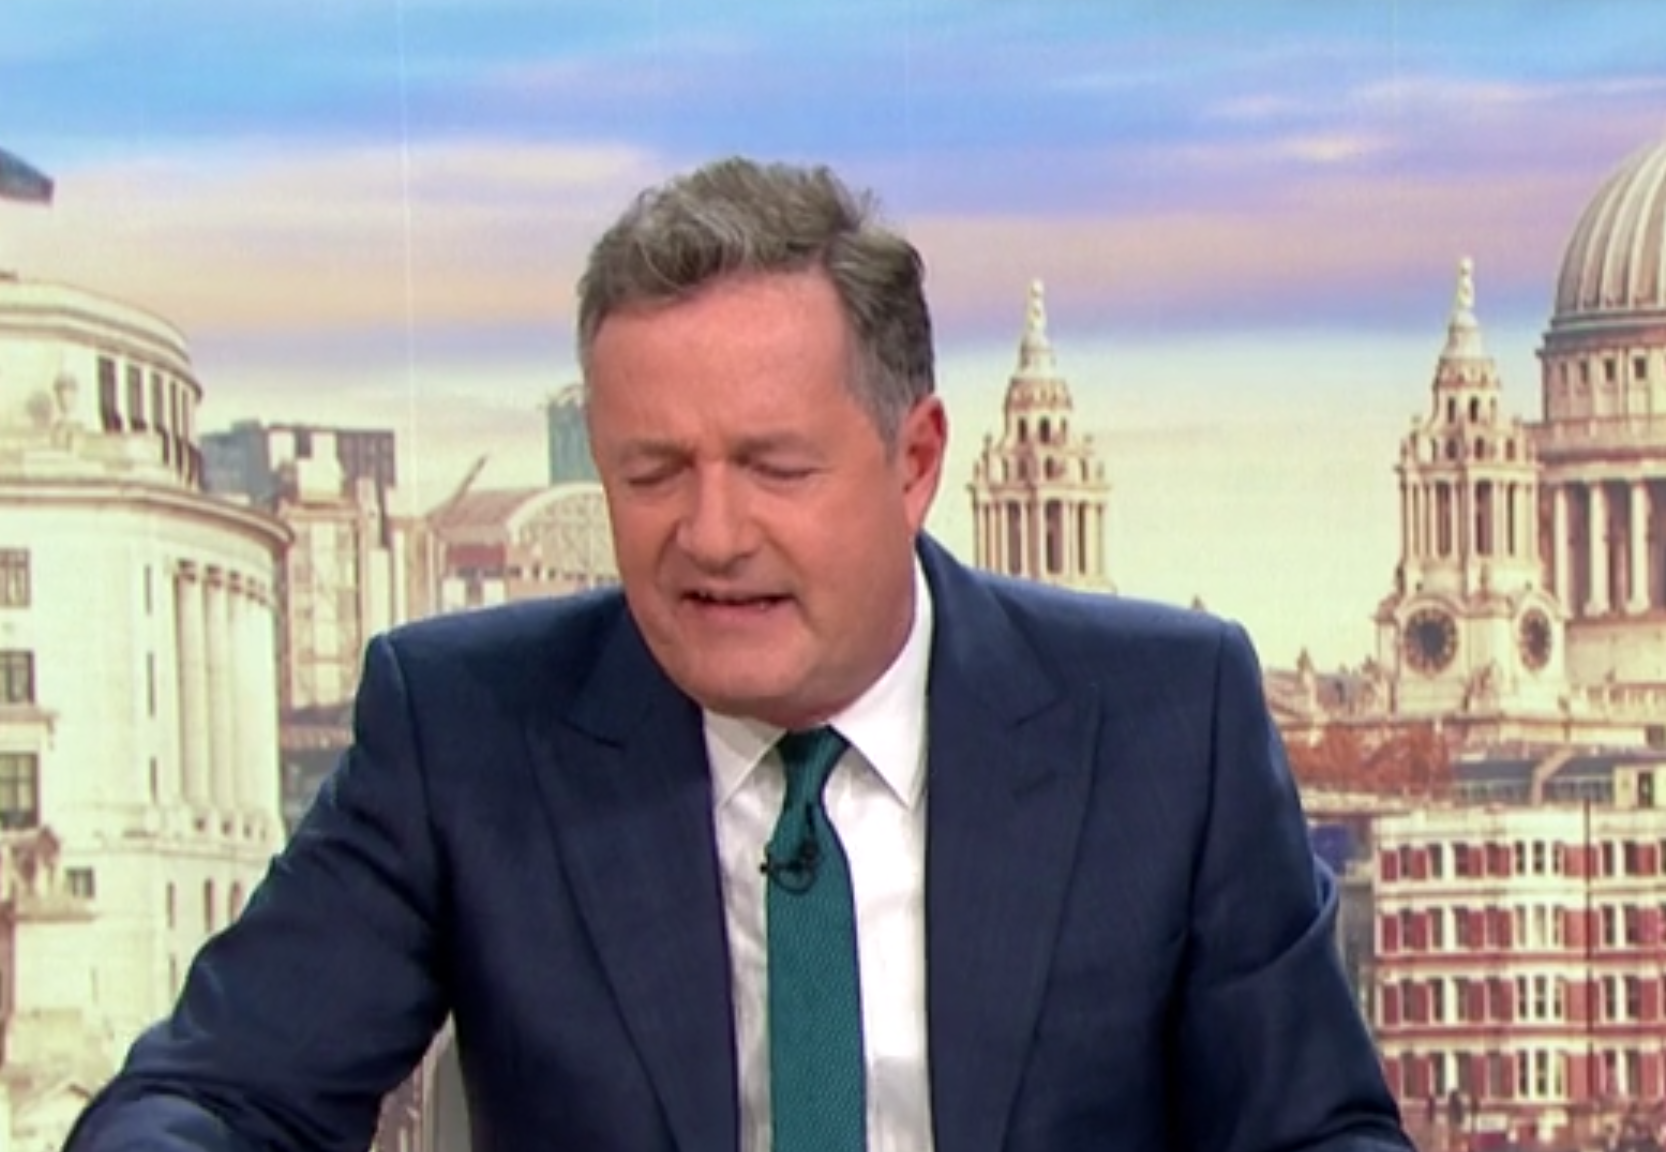 Piers Morgan bizarrely dares Good Morning Britain viewers to try and 'tickle' his privates